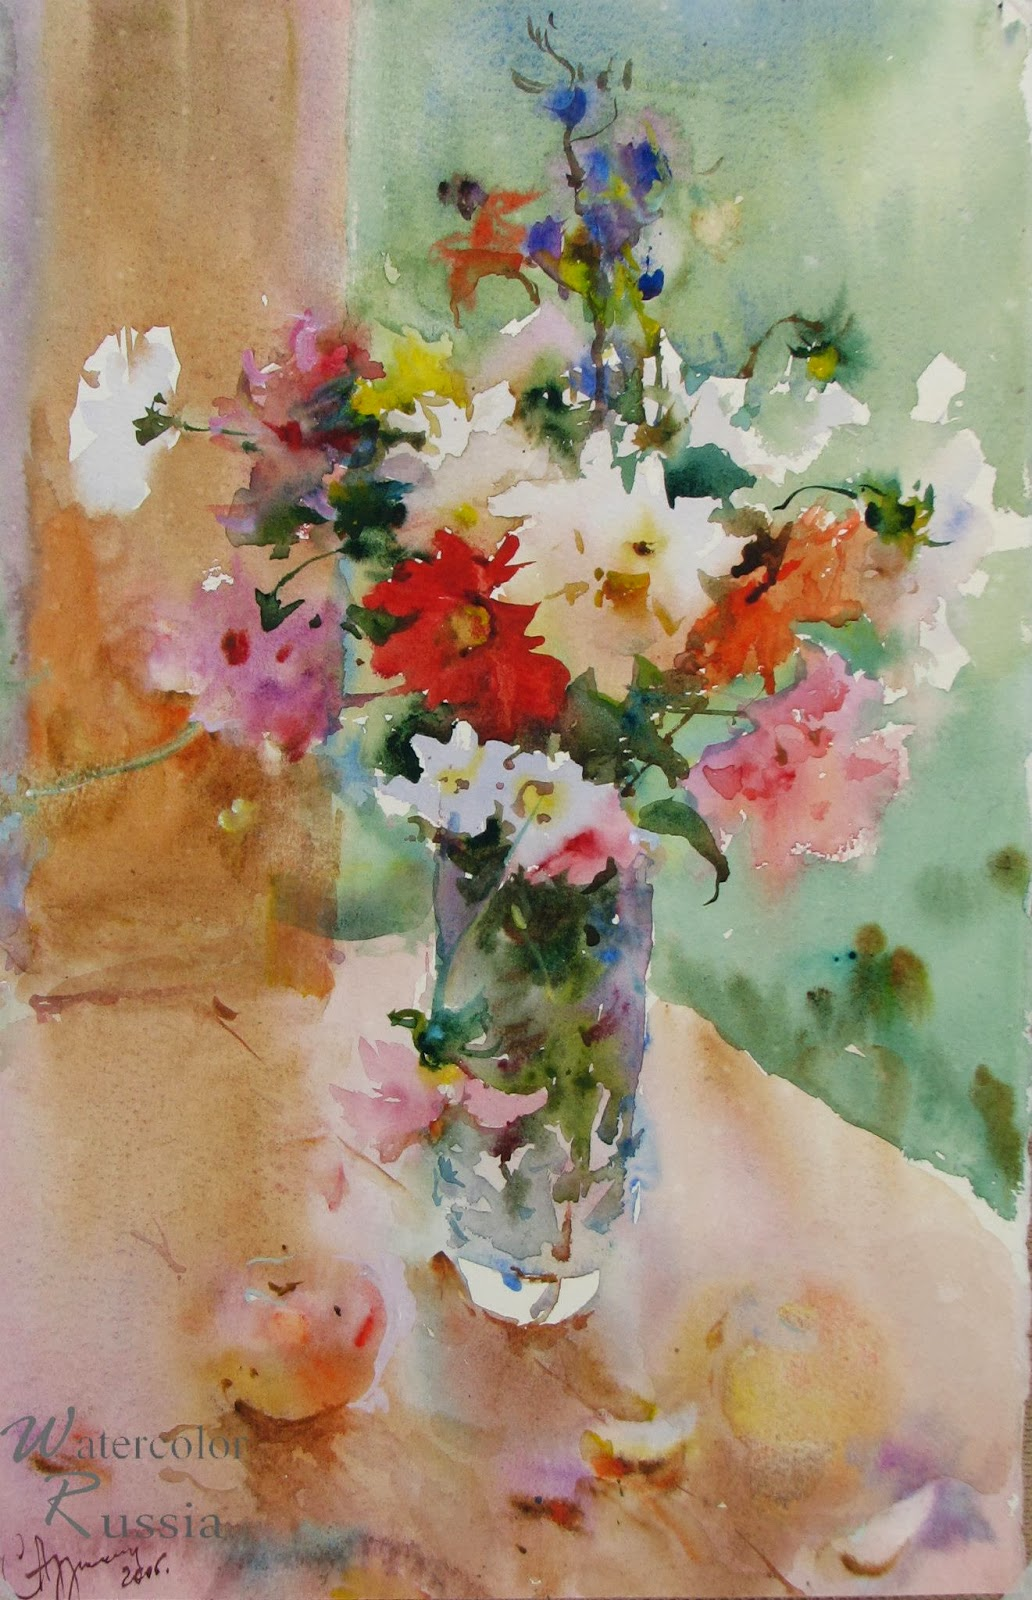 Art Of Watercolor: Some of the Russian Watercolors